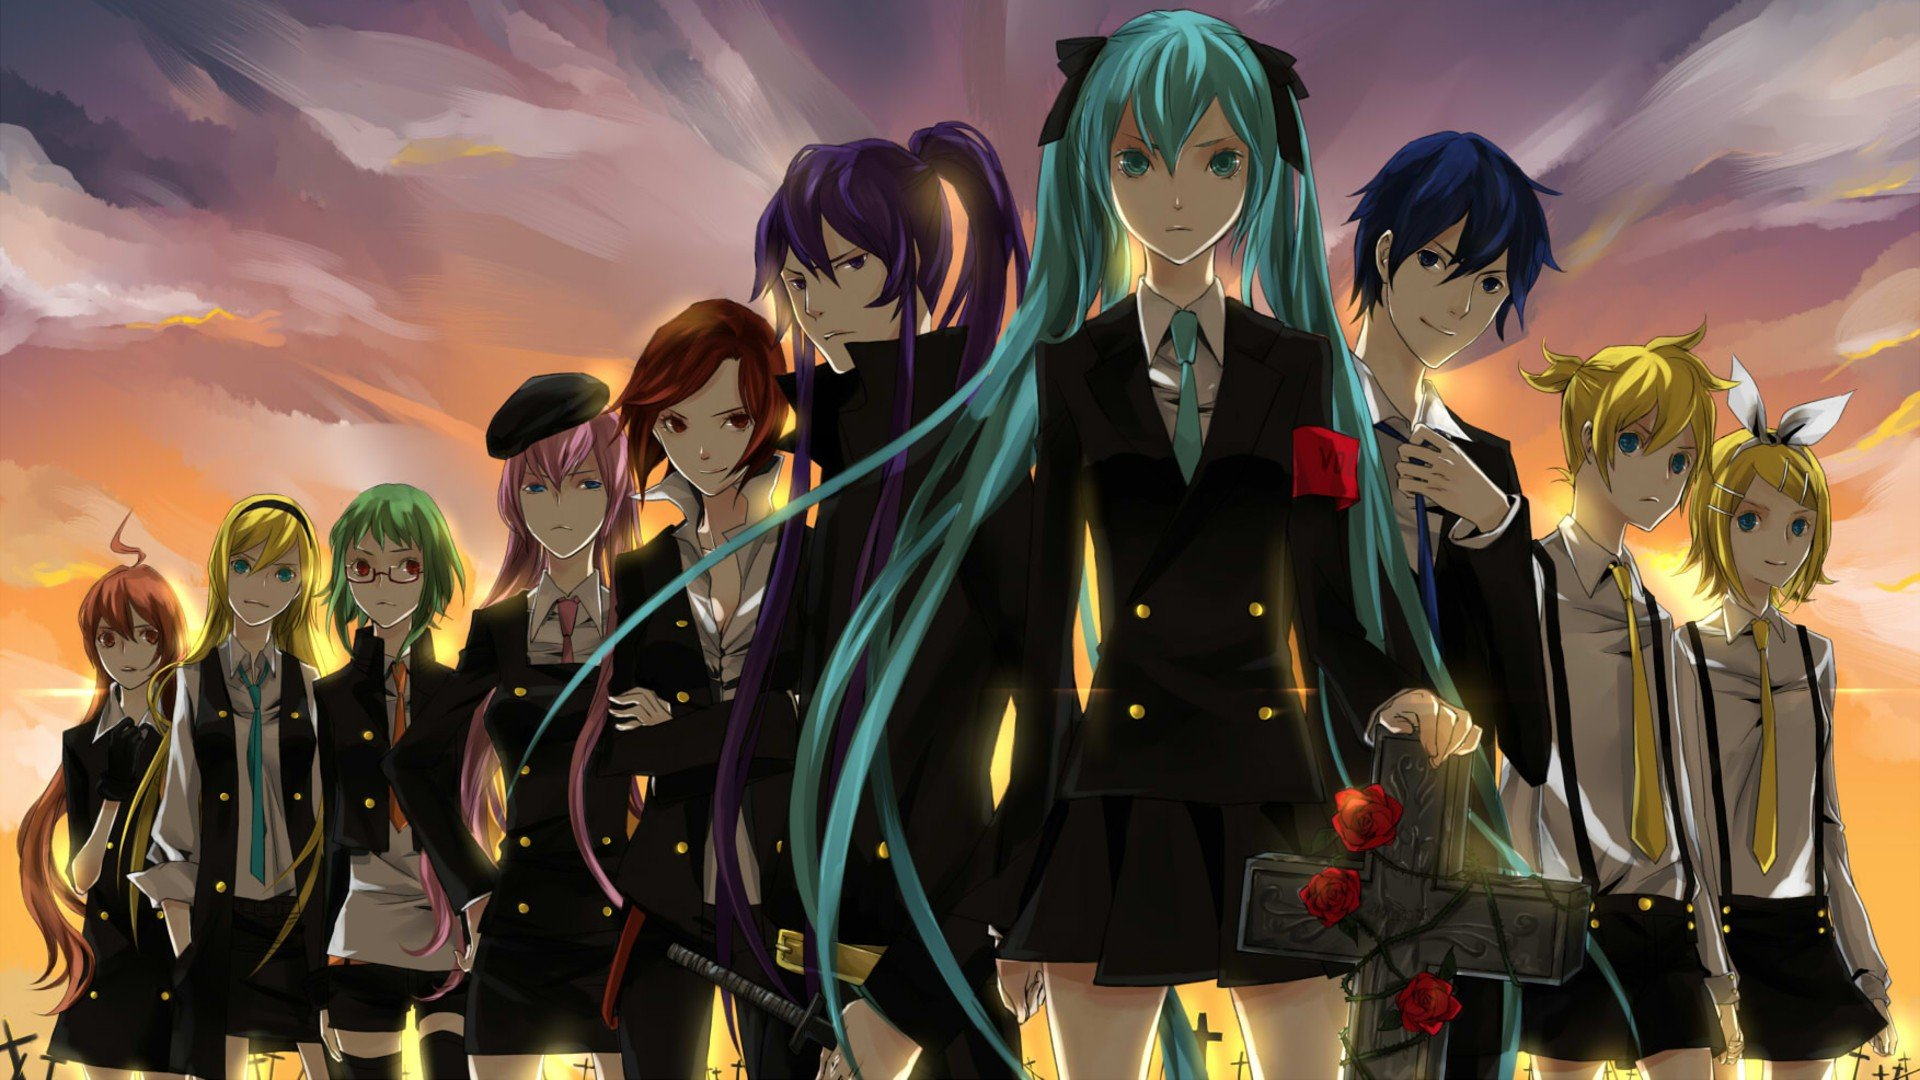 1 V Flower (Vocaloid) HD Wallpapers   Backgrounds - Wallpaper Abyss